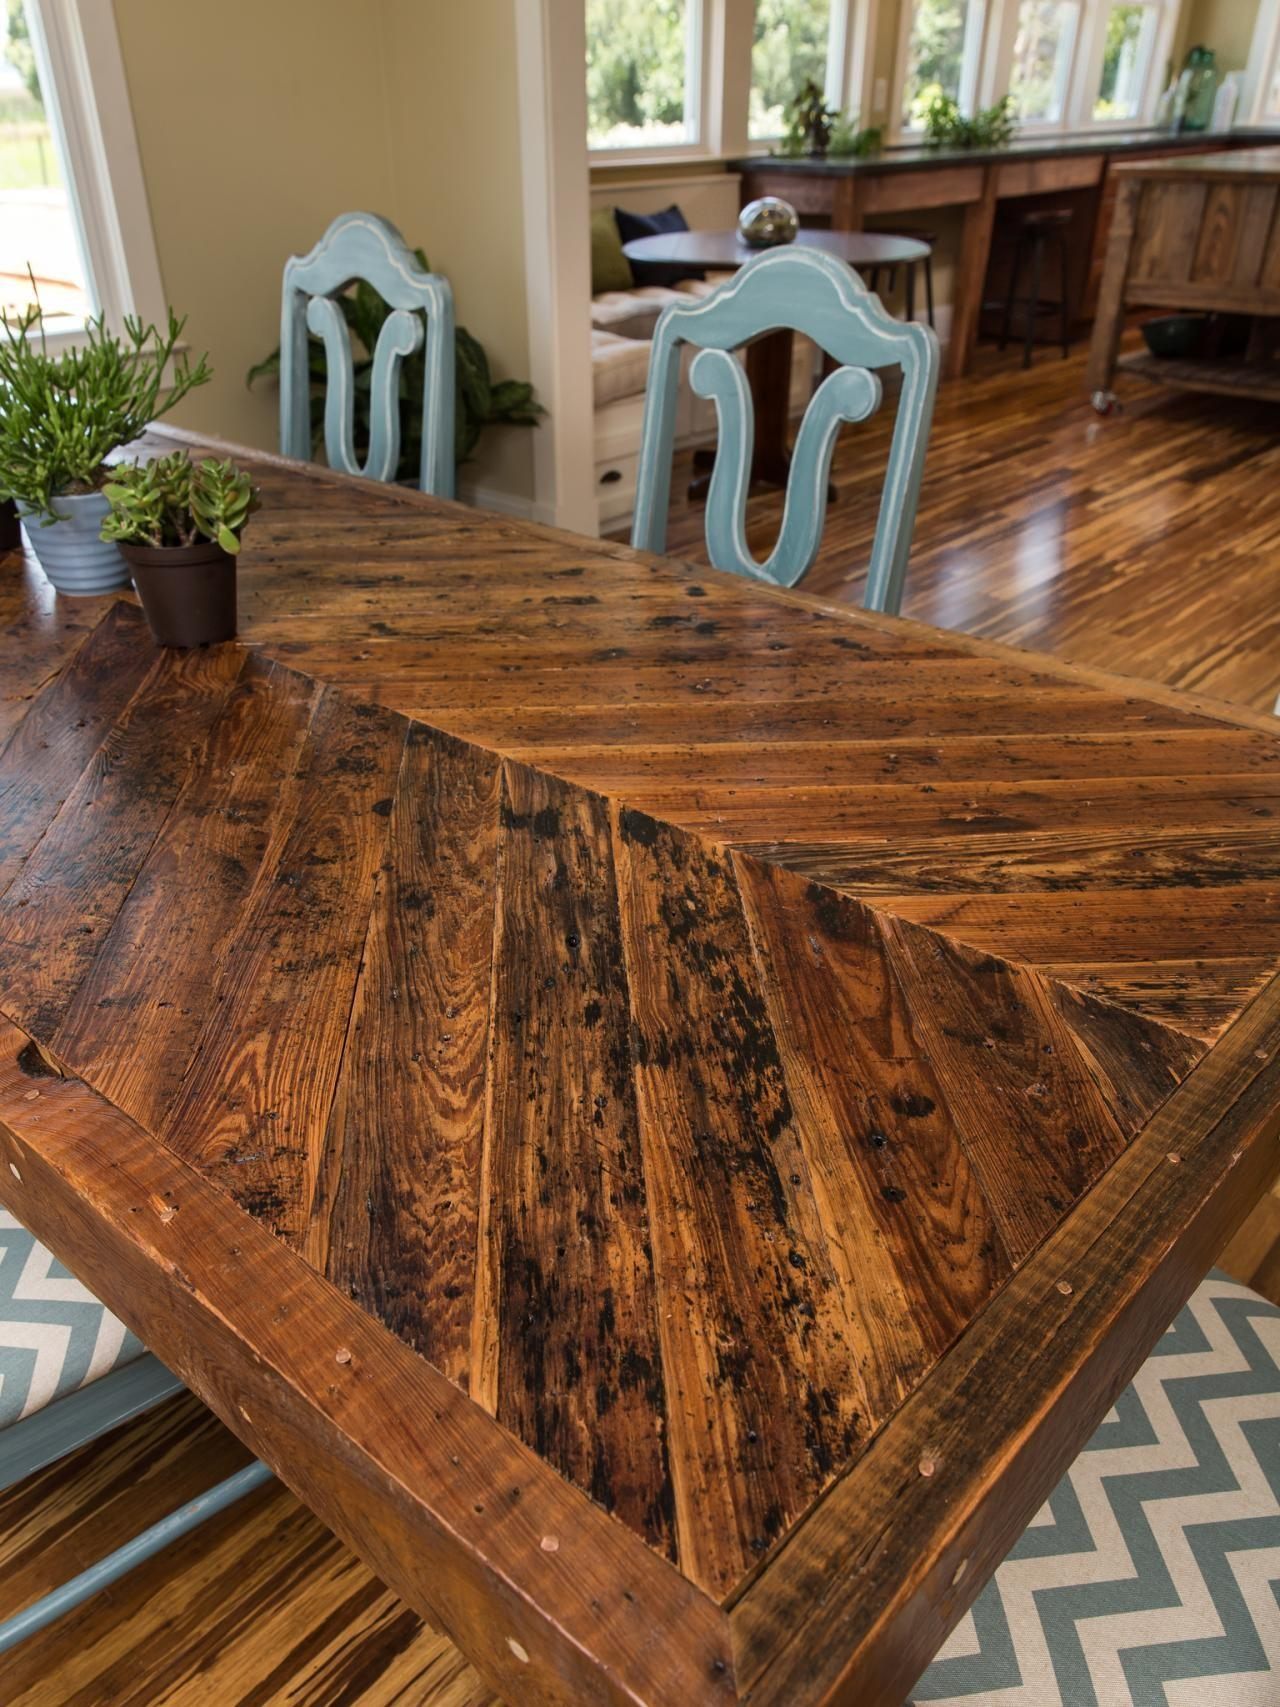 Dining Room Blog Cabin 2014 Diy Network